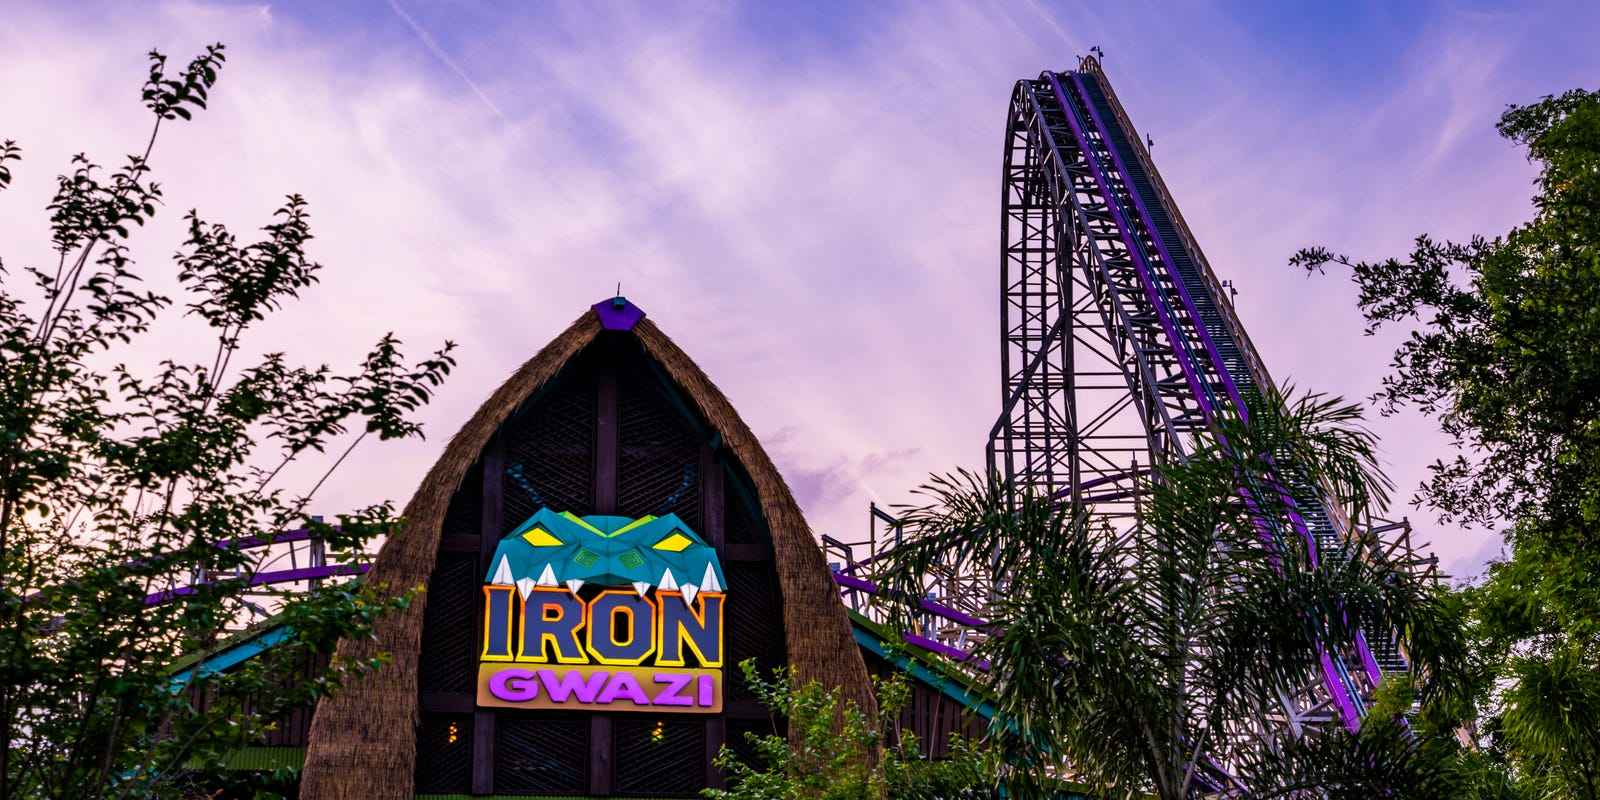 Watch first onboard from Florida's Iron Gwazi roller coaster